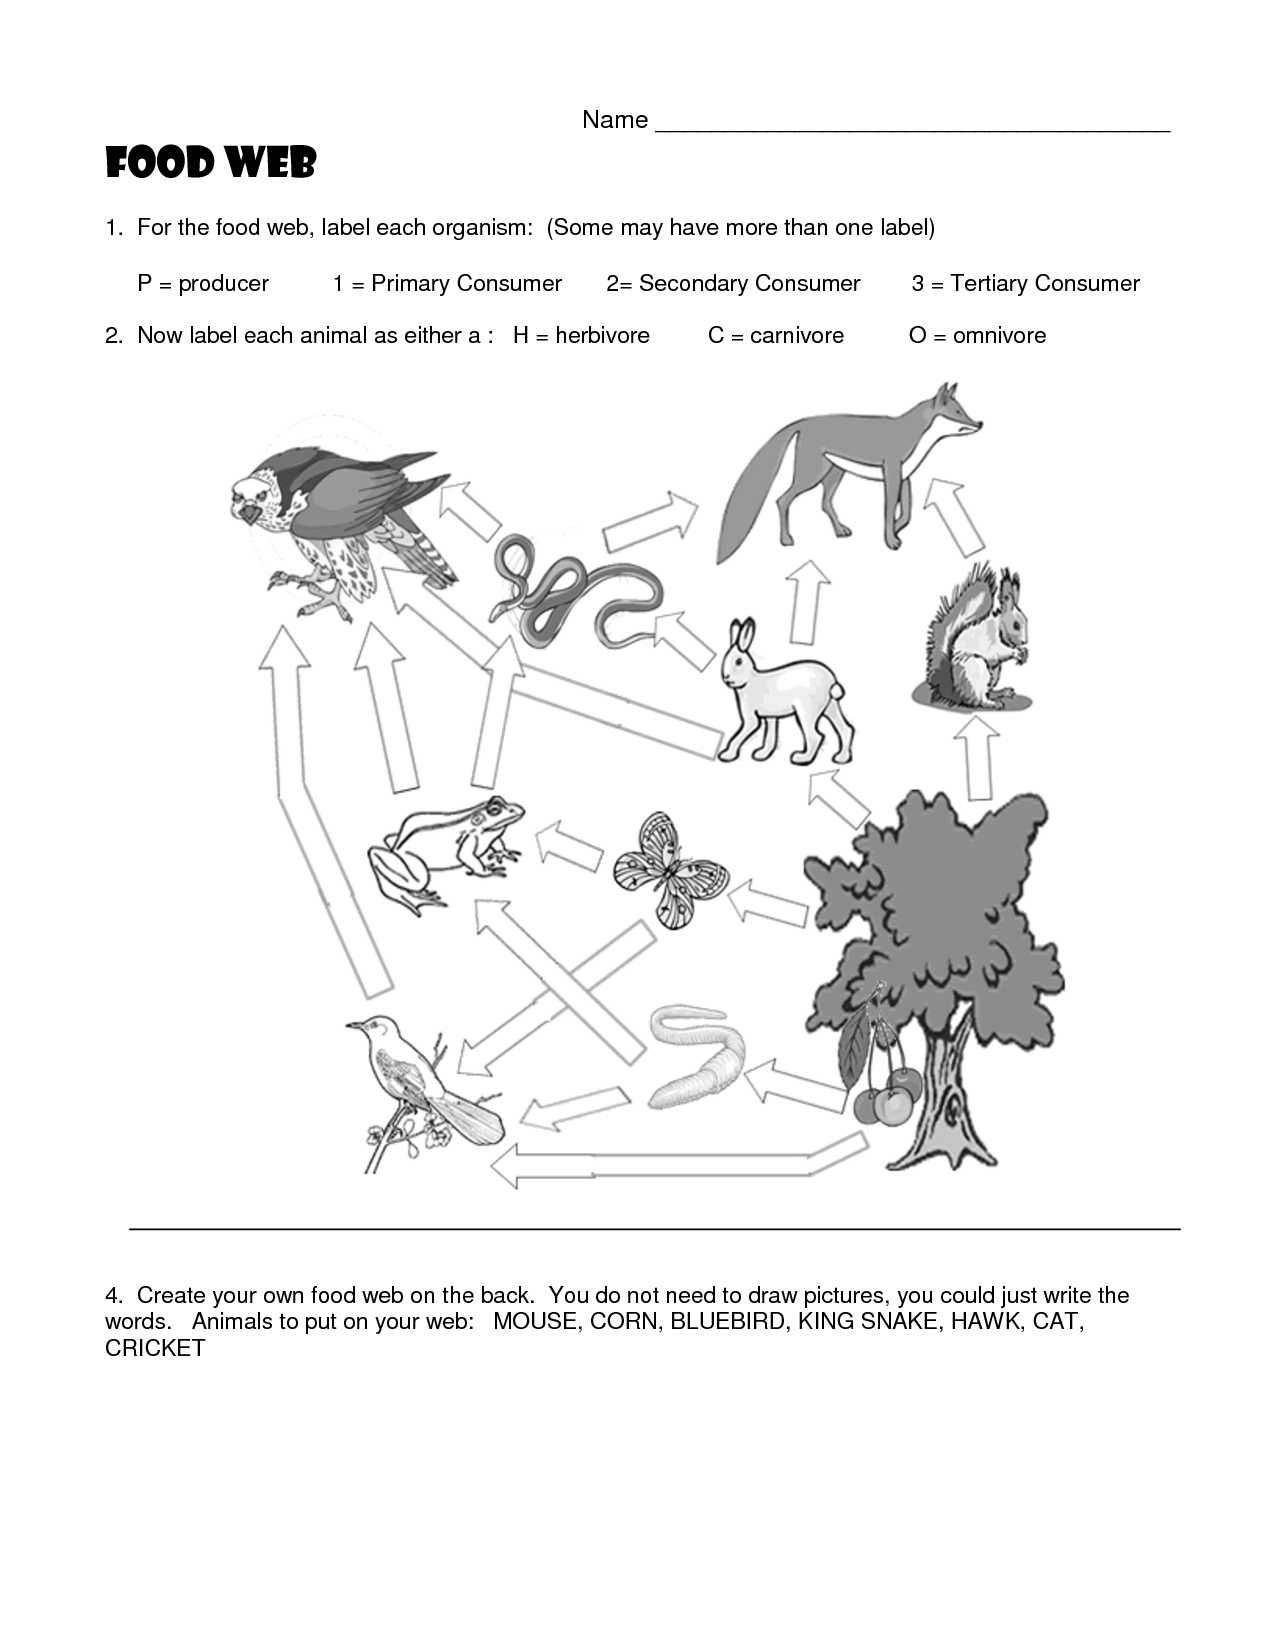 Pictures Of Omnivores Carnivores And Herbivores Food Web